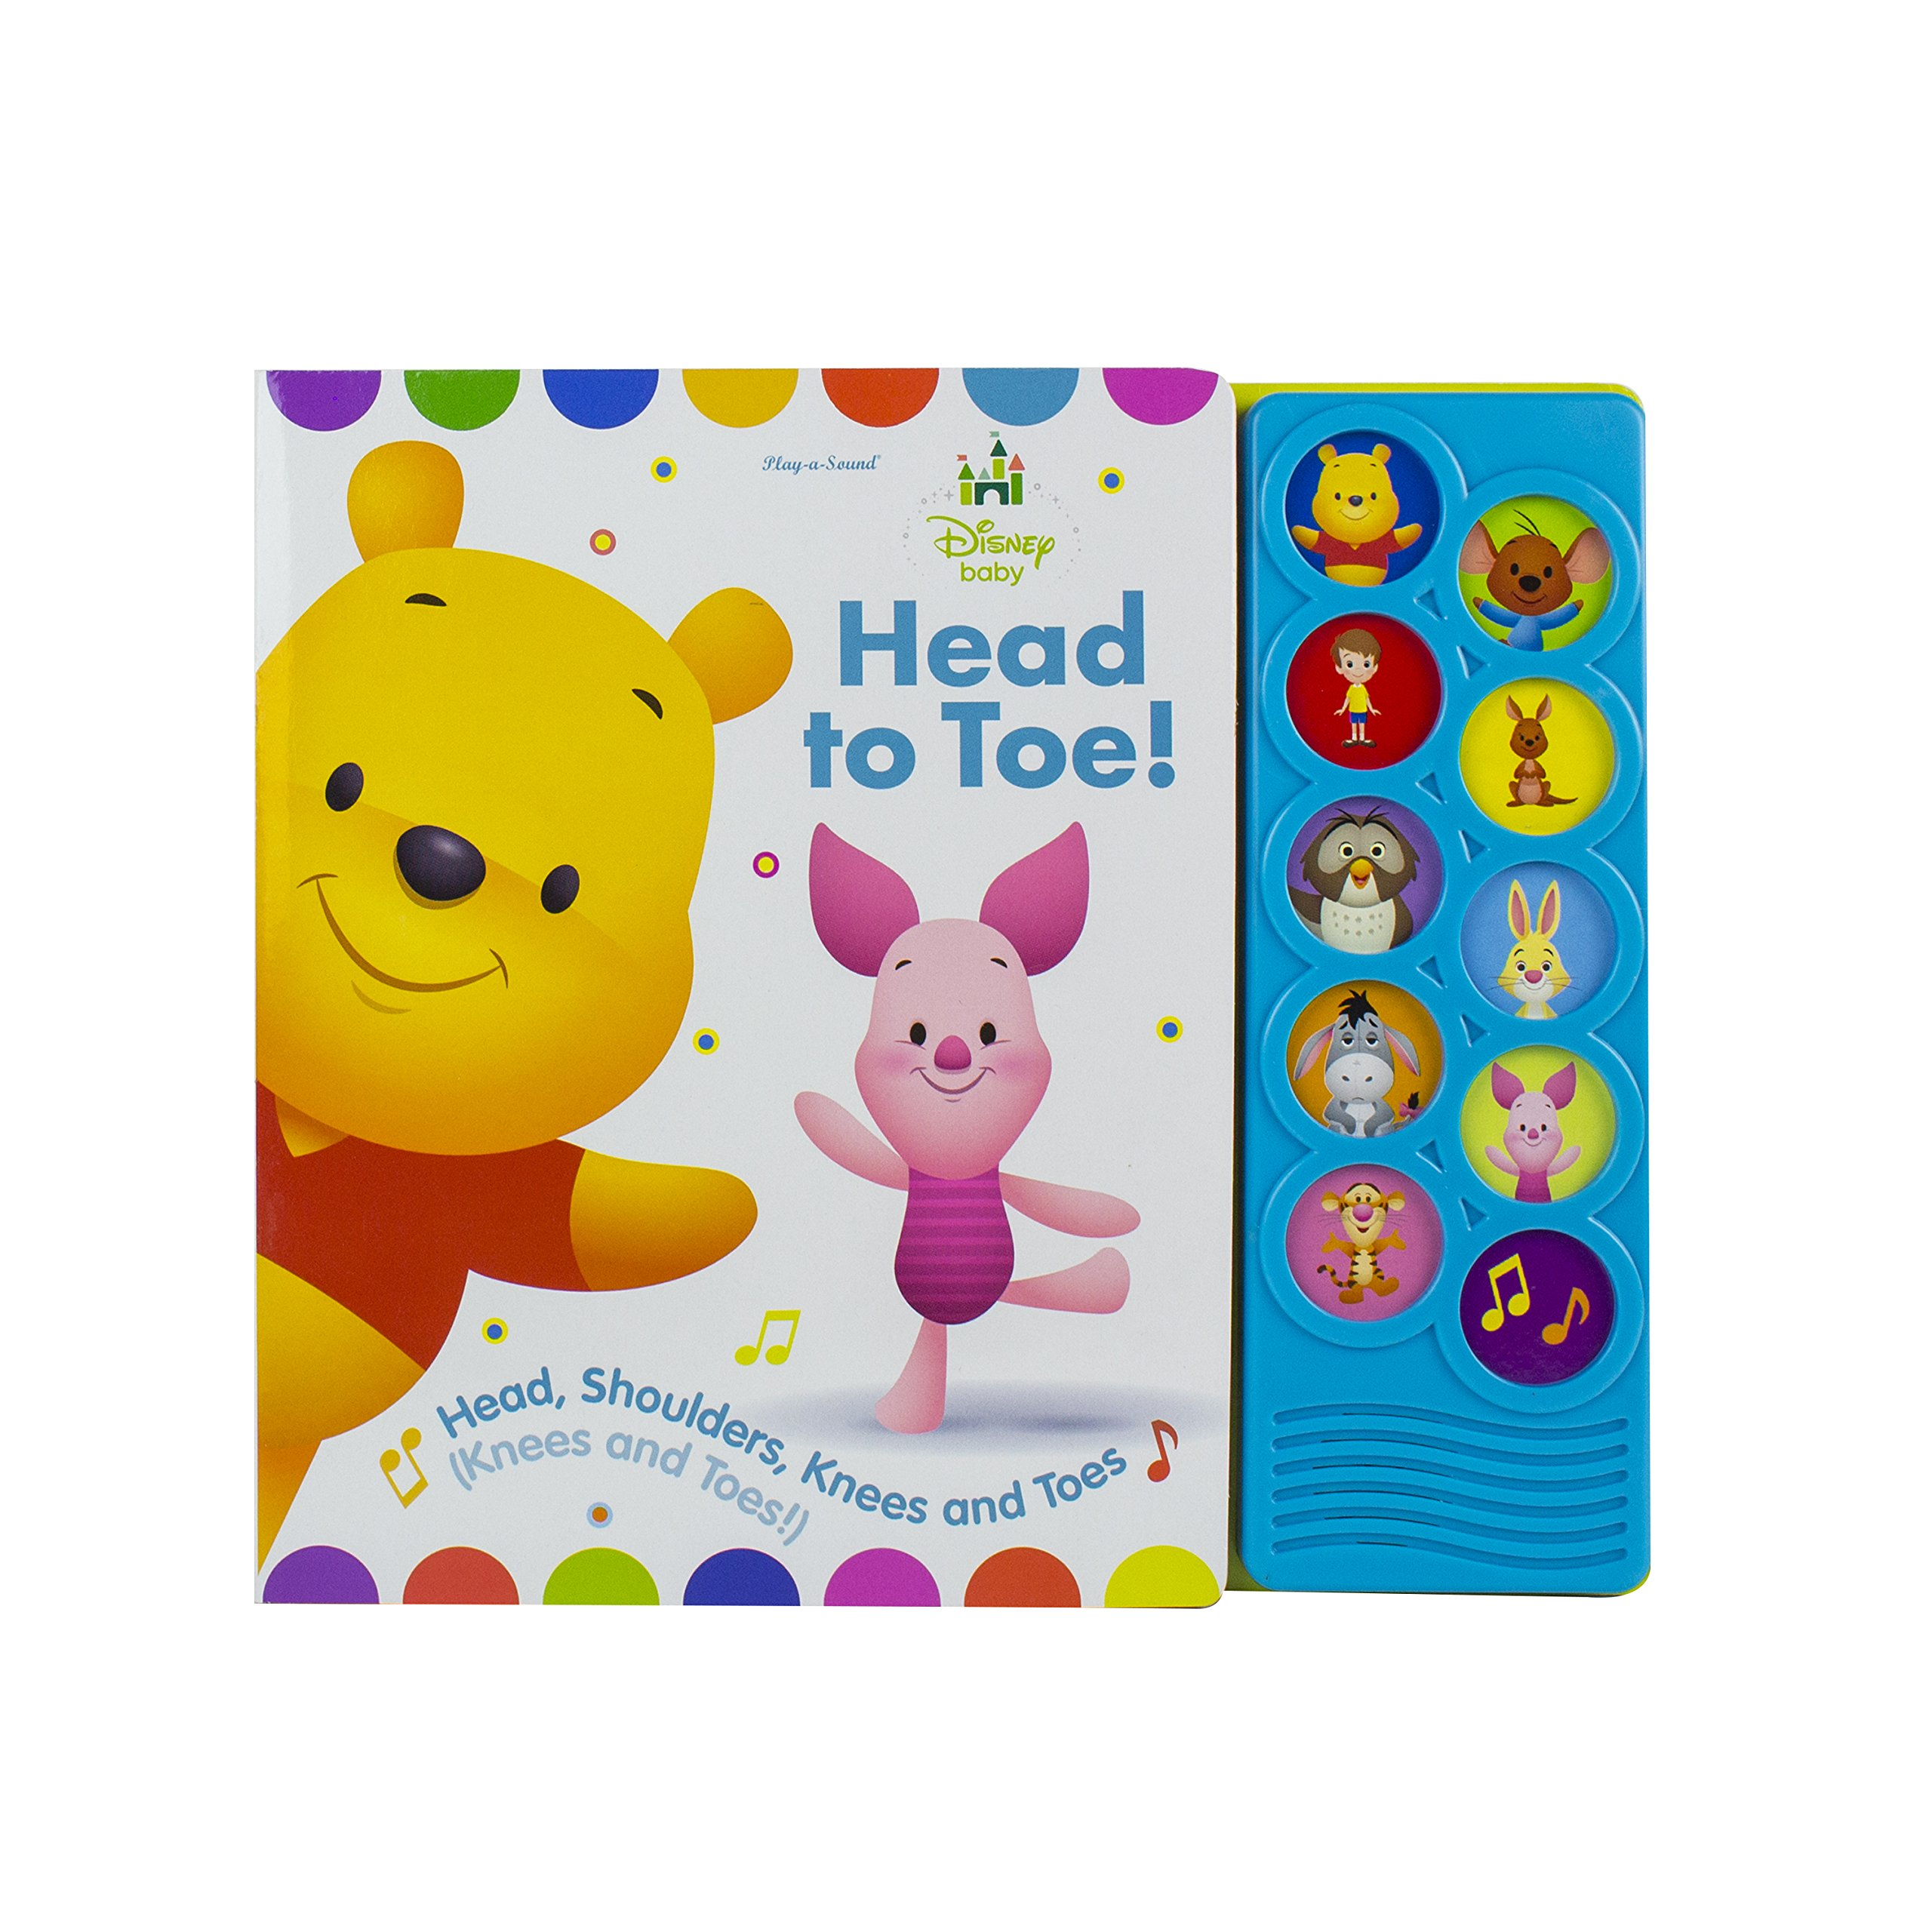 6b9dbe102 Disney Baby - Winnie the Pooh - Head to Toe! - Play-a-Sound - PI Kids  (Disney Baby  Play-a-Sound) Board book – Sound Book